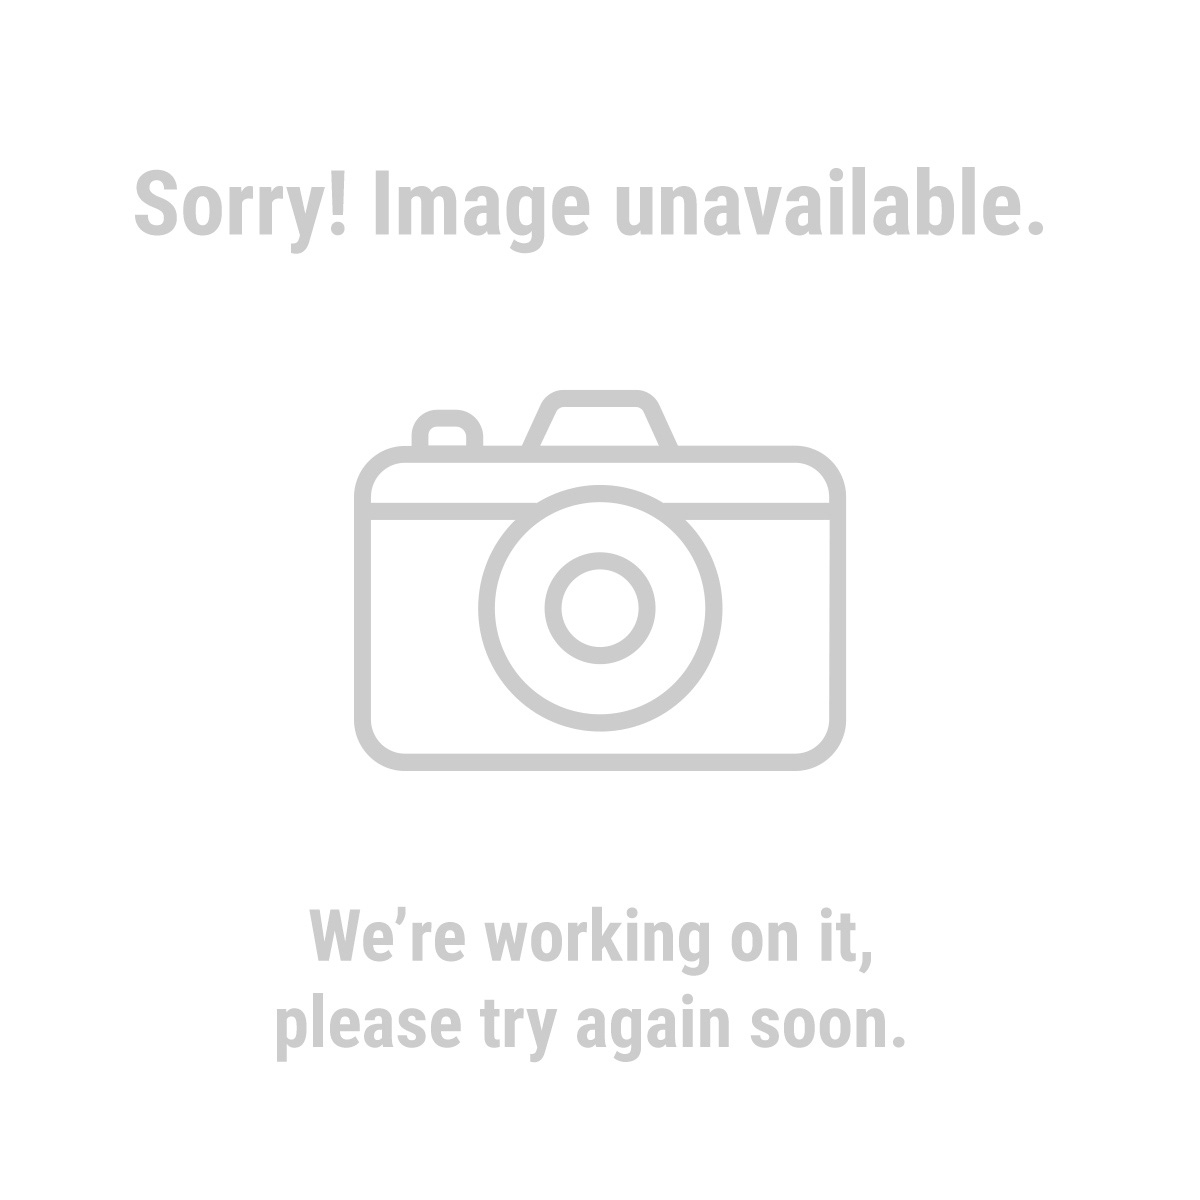 "Pittsburgh 39606 24"" Aluminum Pipe Wrench"